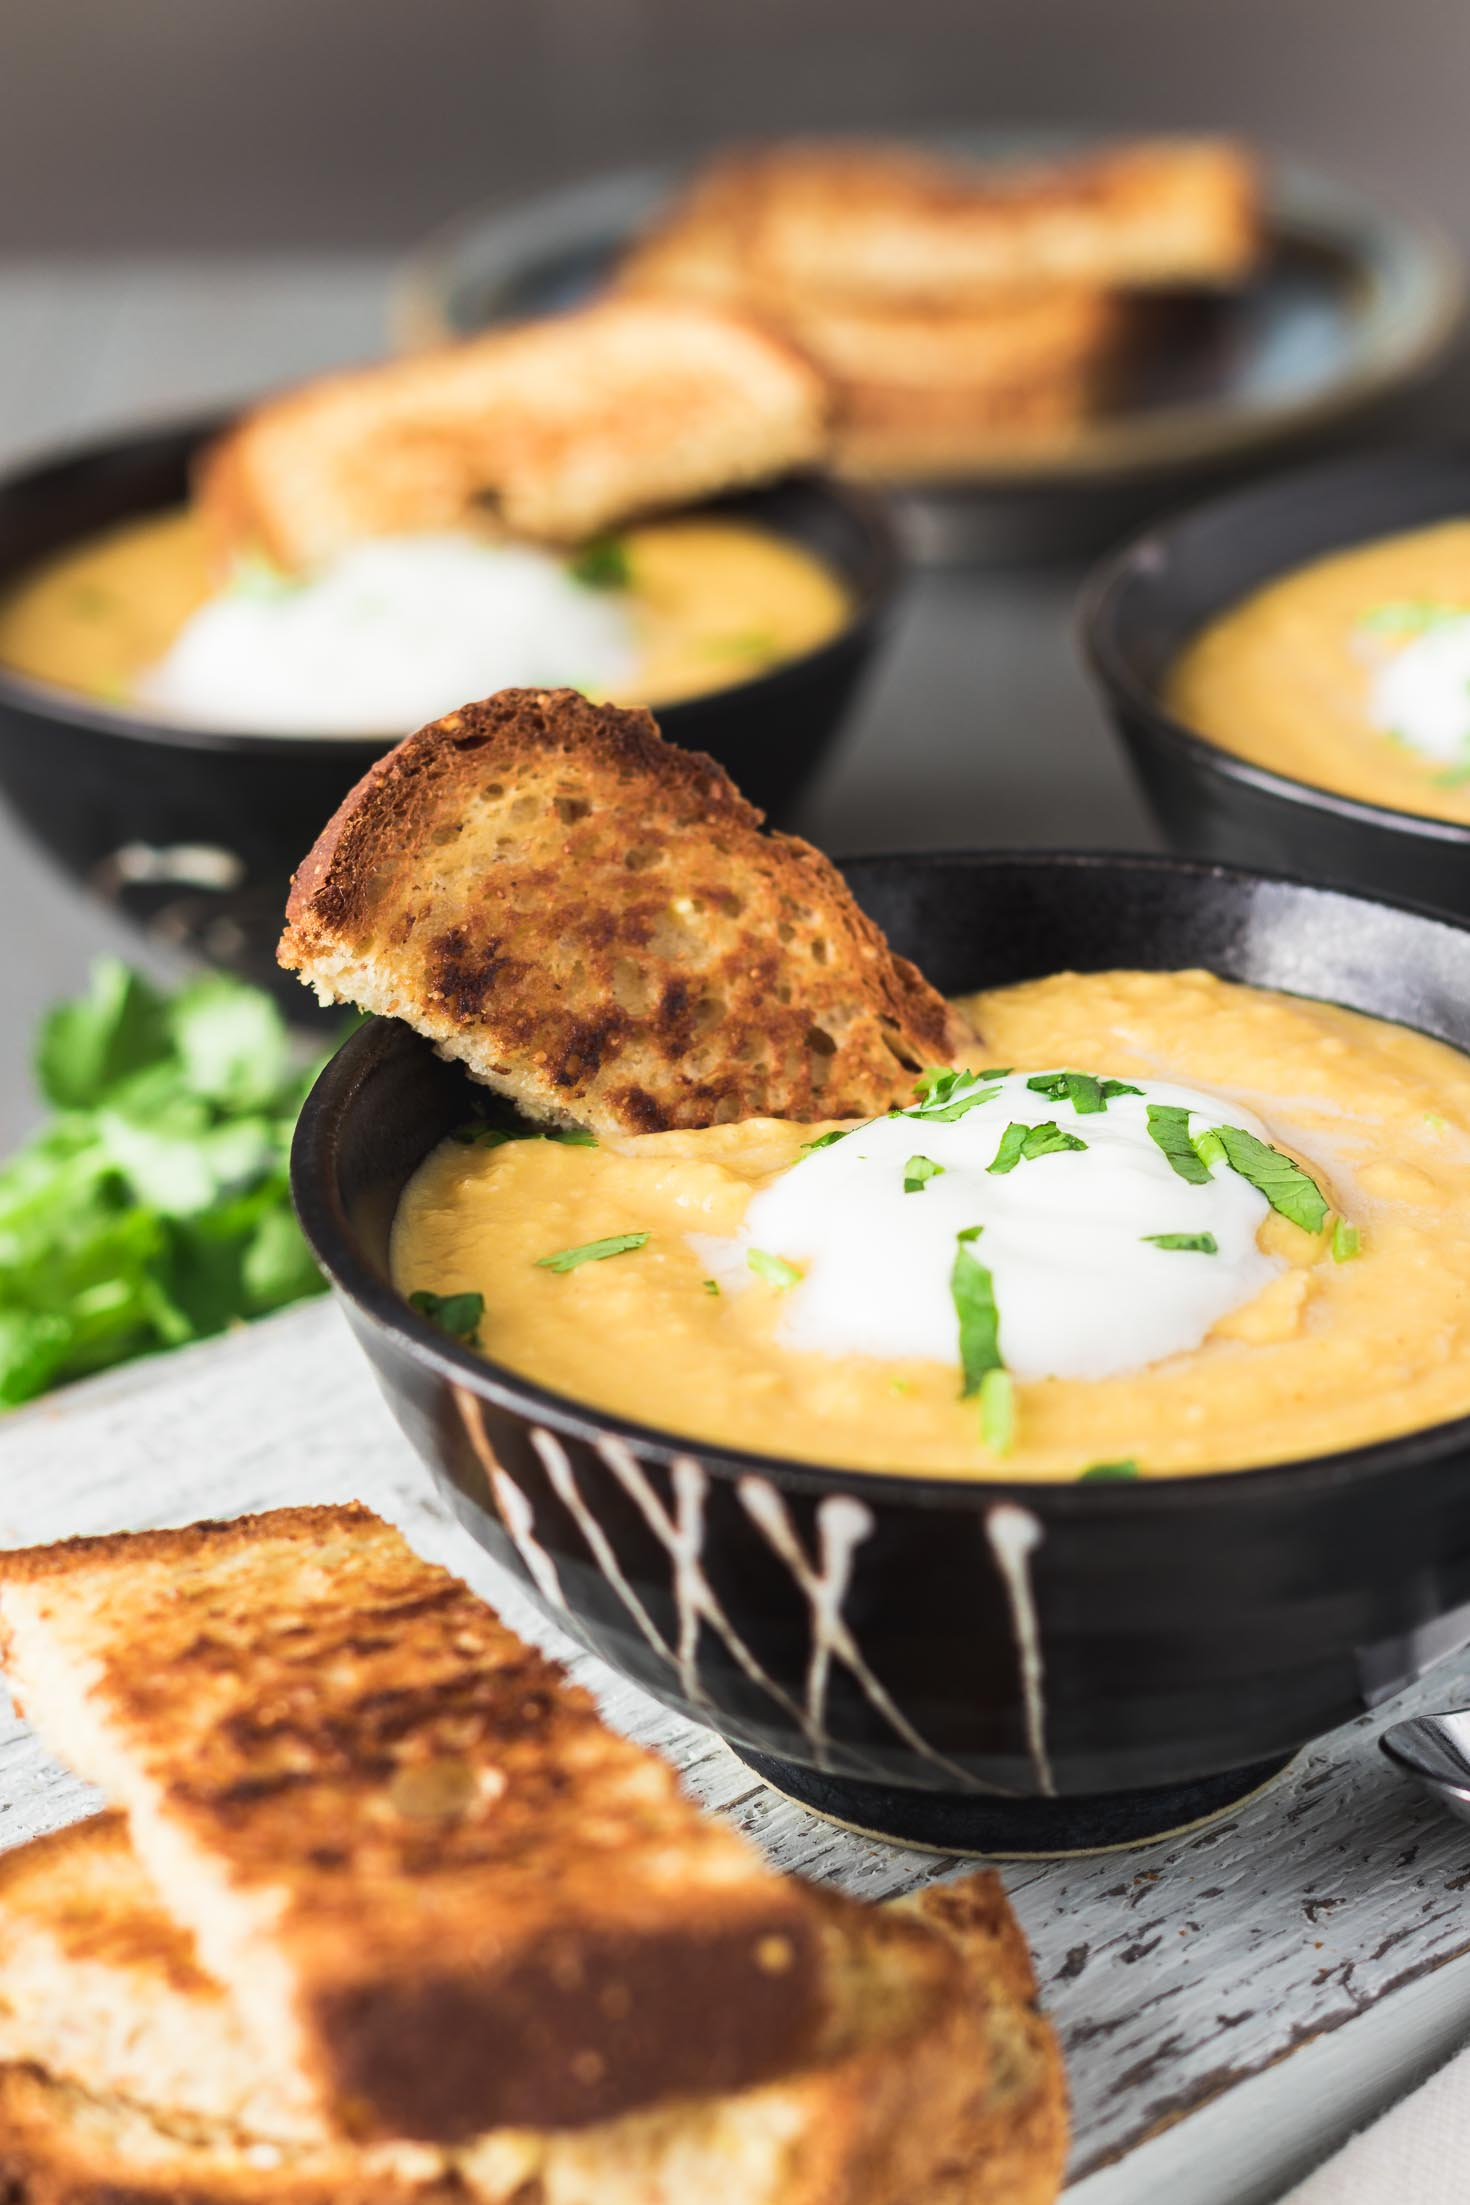 Navy Bean Garam Masala Carrot Soup-sideview-soup in one bowl with toasted bread and garnished with yogurt and fresh cilantro leaves